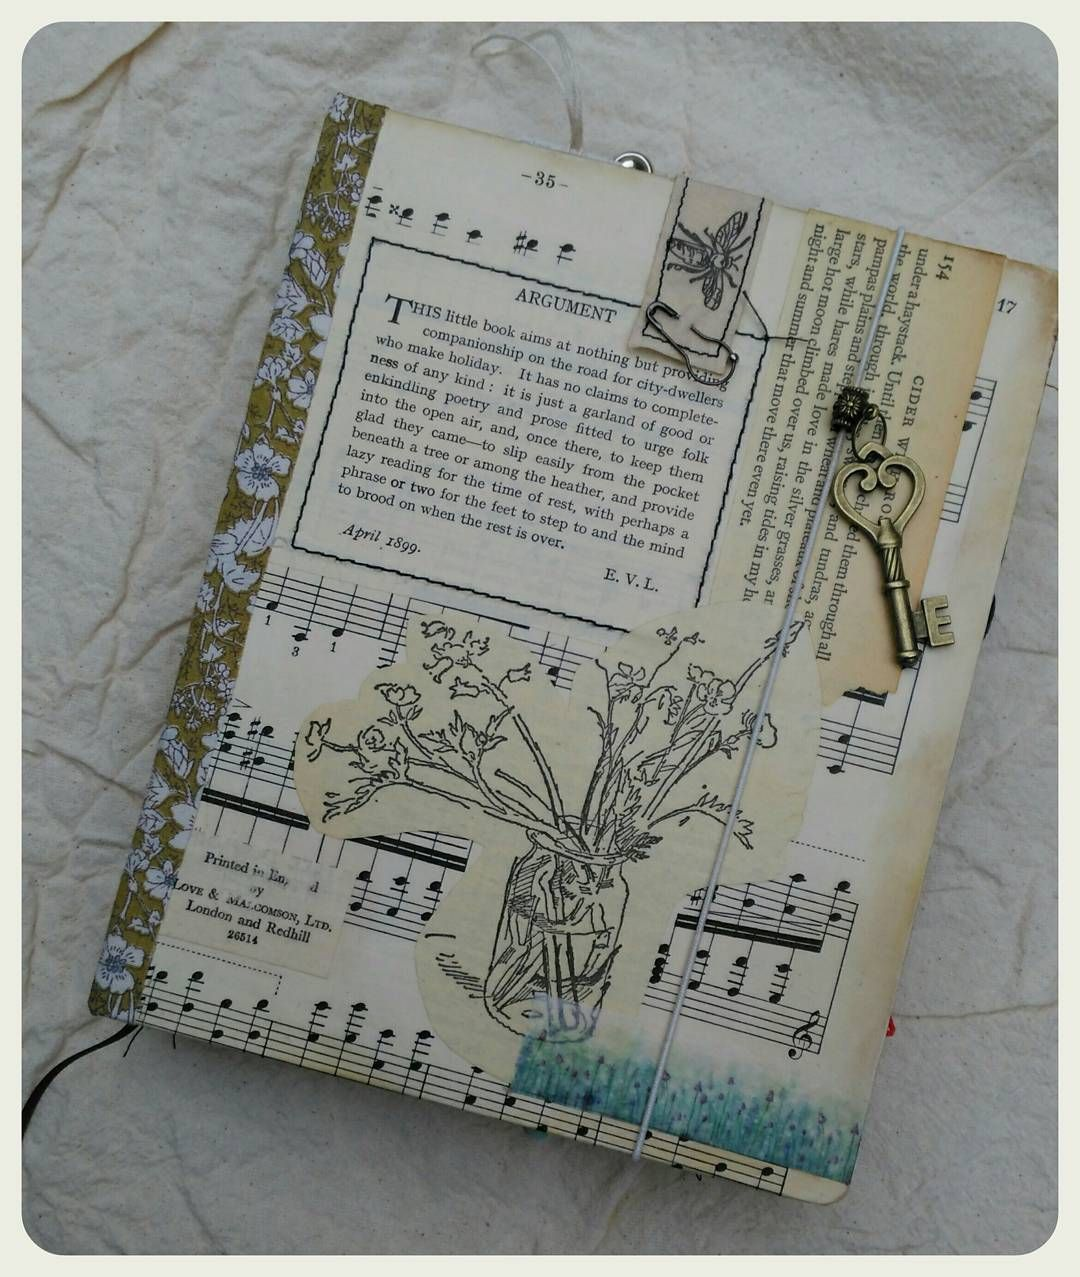 Handmade Journal Notebook For Sale In My Etsy Shop Drawingbook Planner Junkjournal Paper Paperlove Sta Vintage Journal Handmade Books Handmade Journal